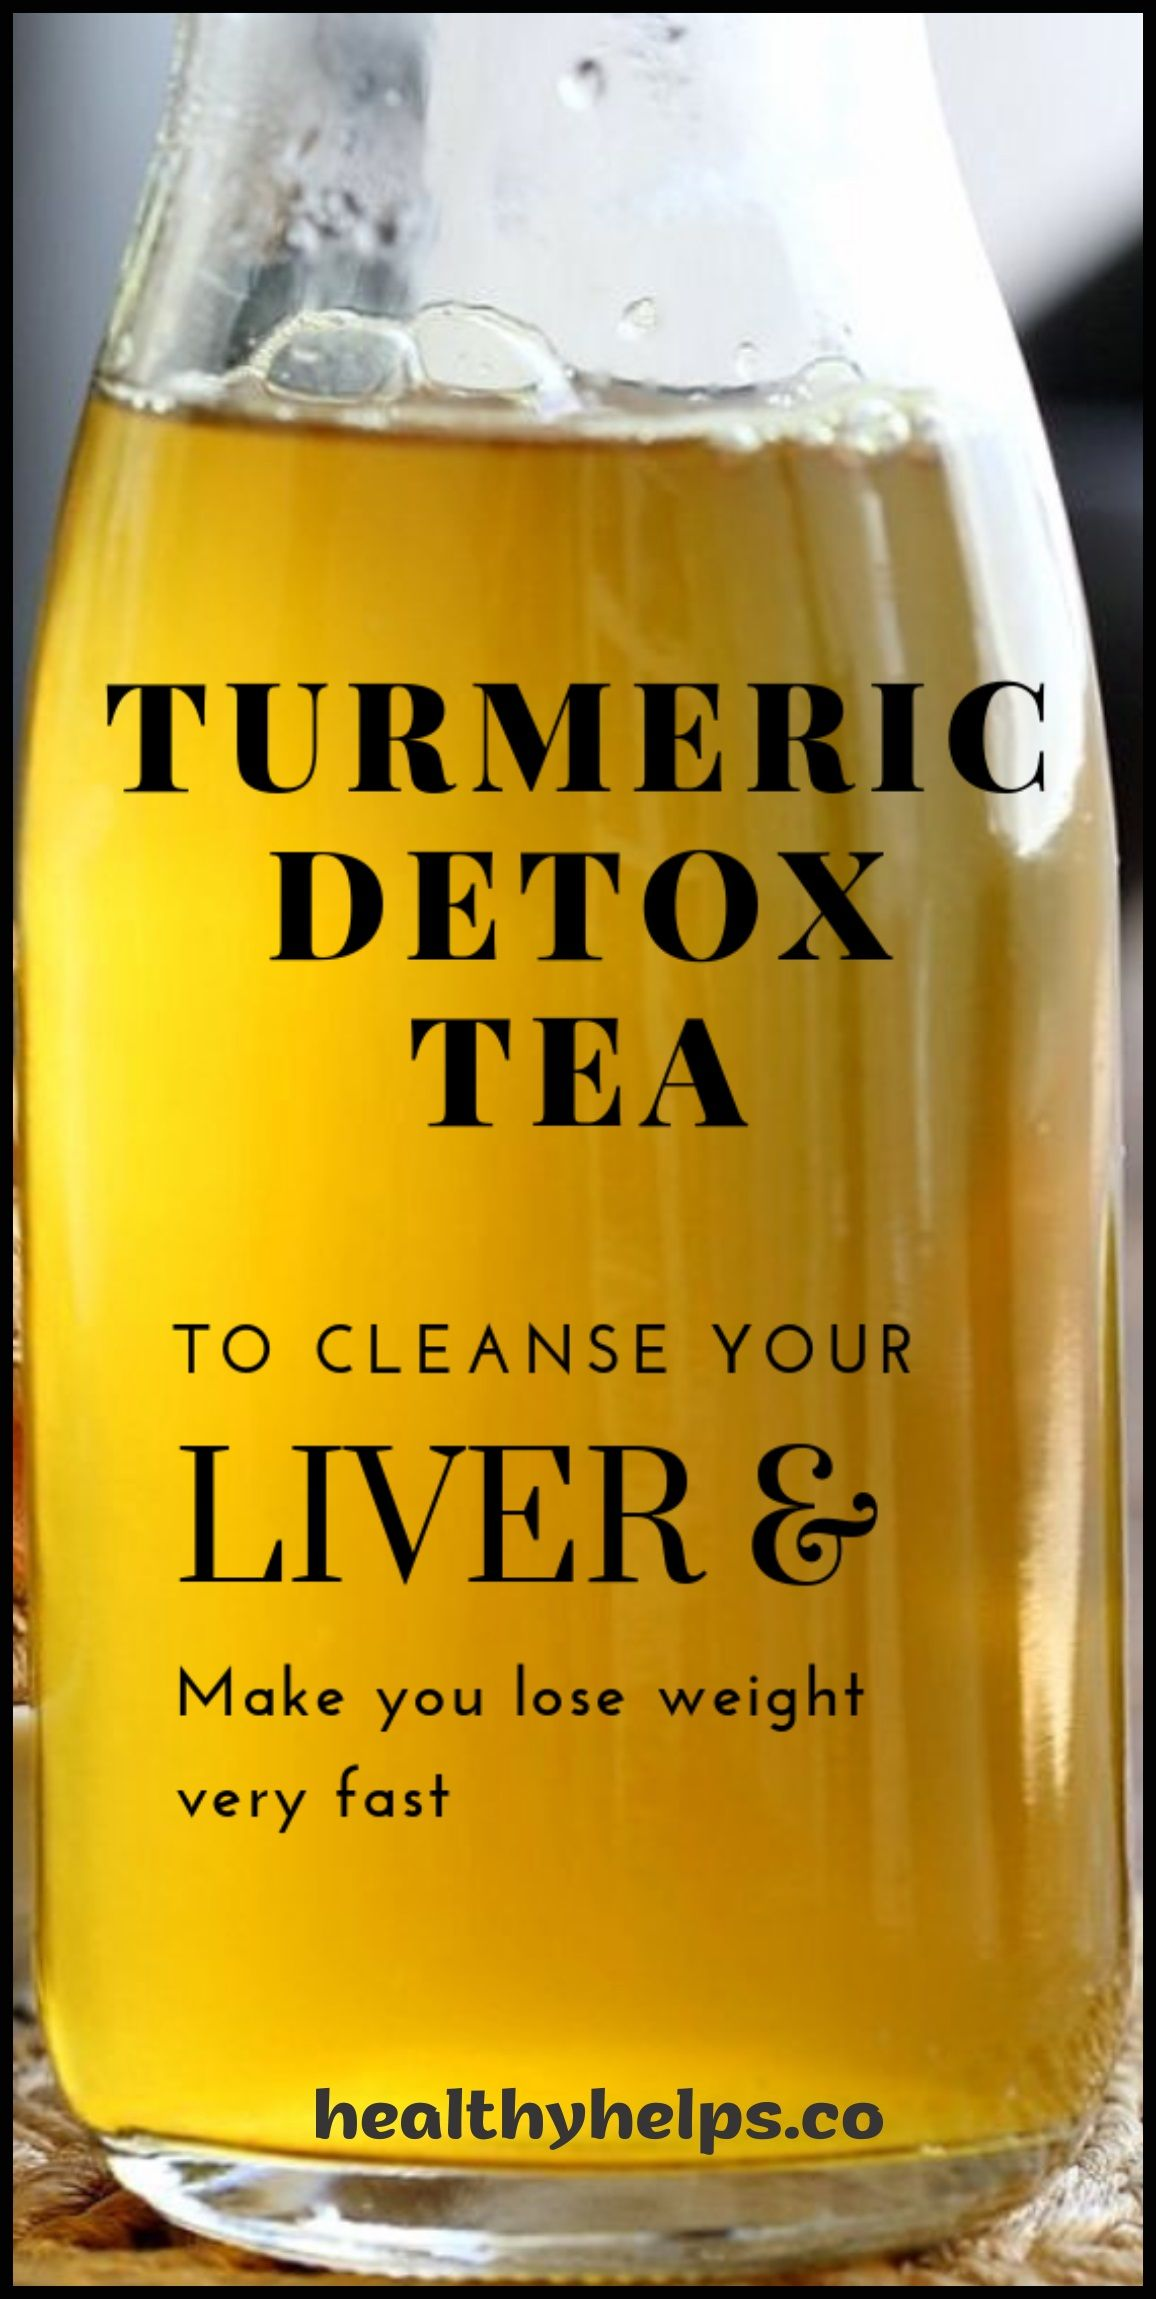 Powerful Turmeric Detox Tea To Cleanse Your Liver And Lose weight Very Fast